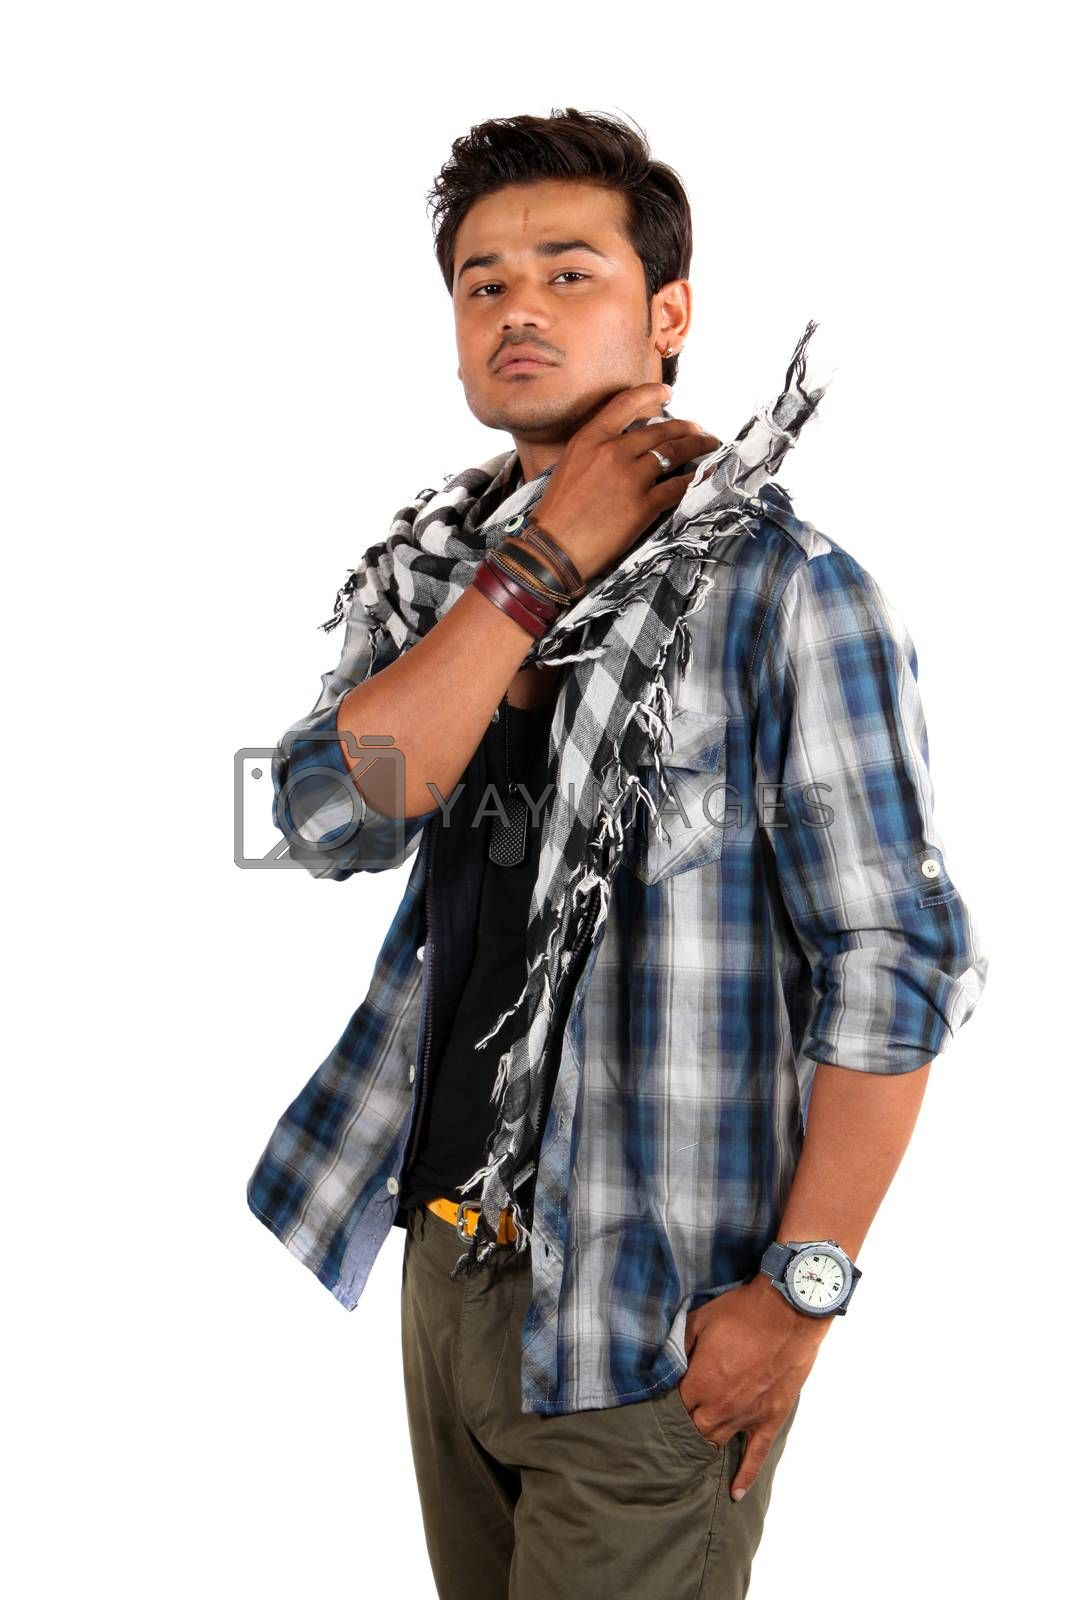 A young Indian model wearing his muffler in style, on white studio background.